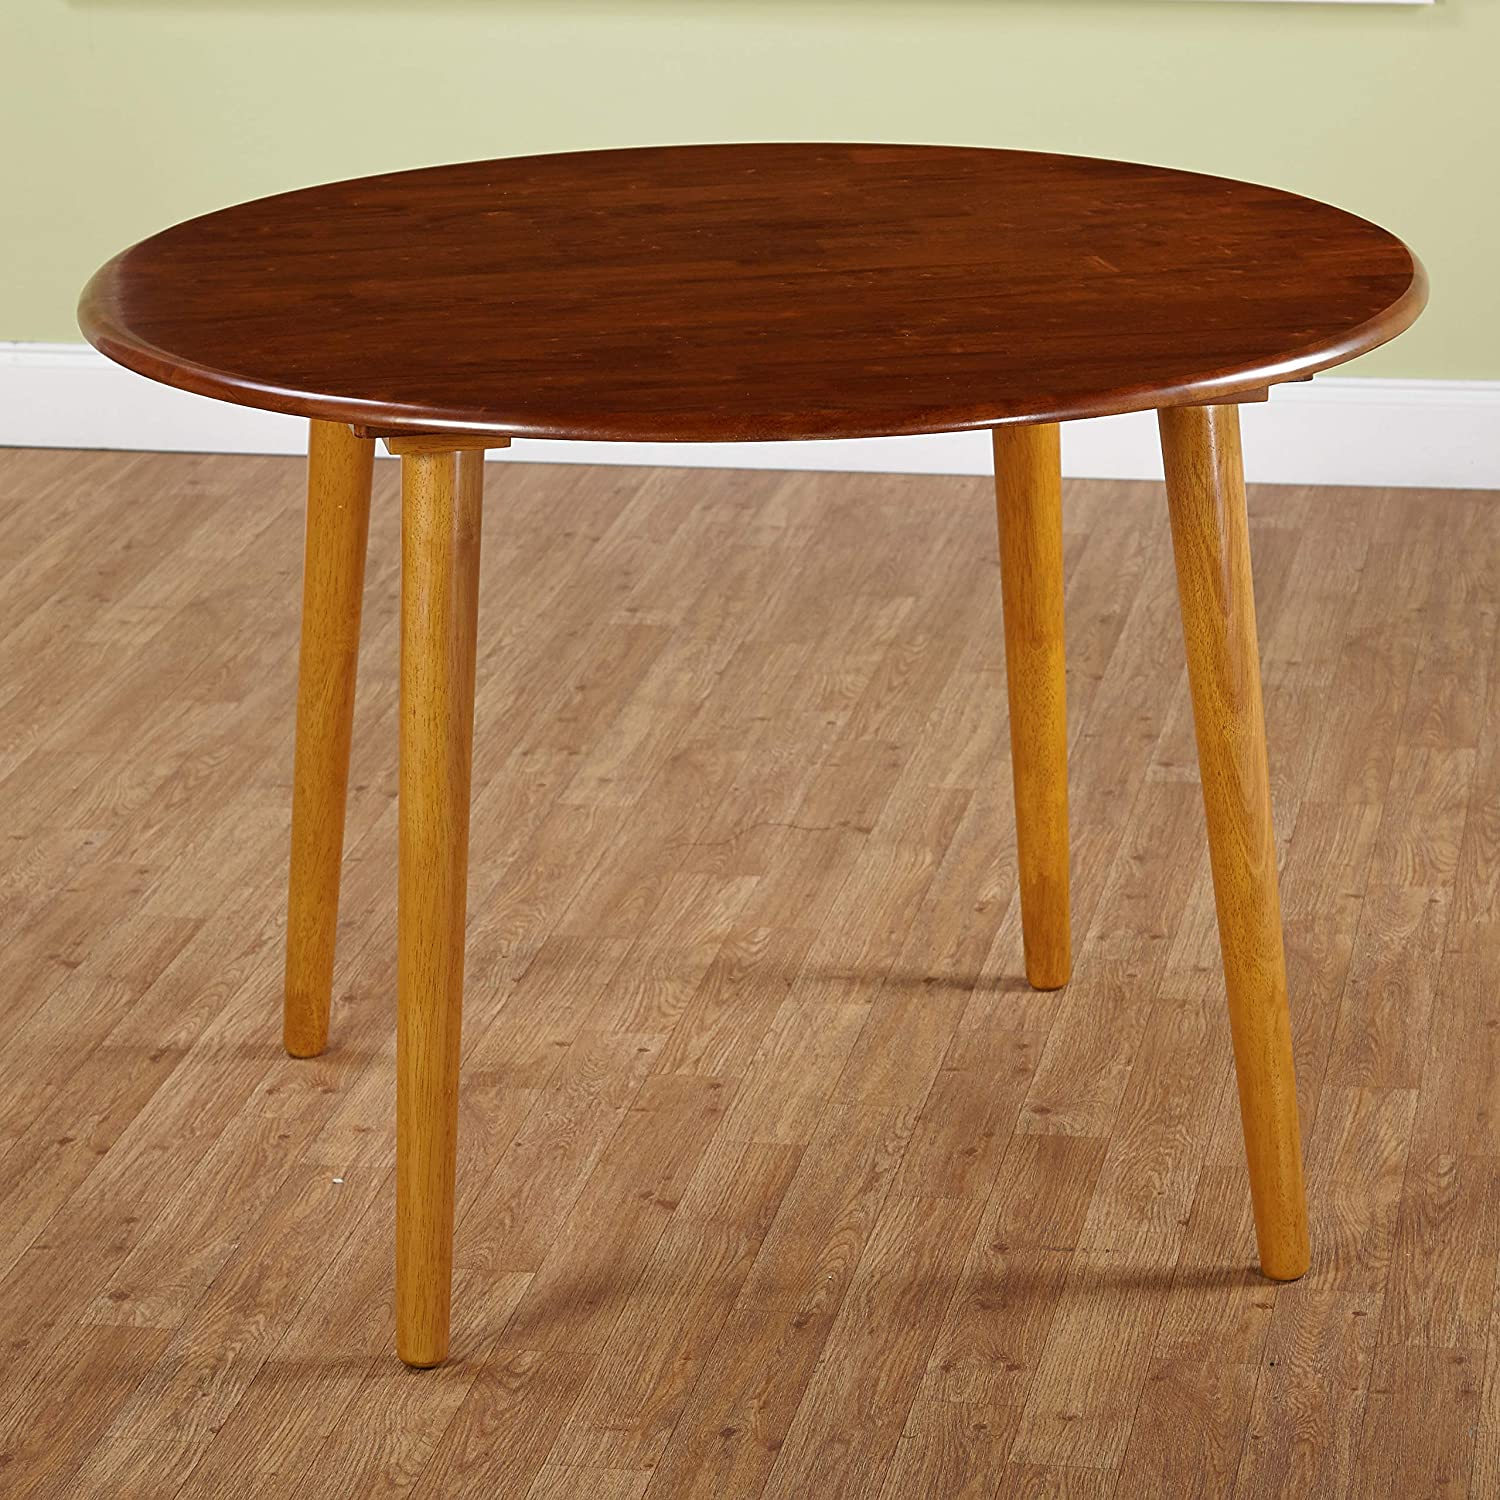 Target Marketing Systems 42-Inch Round Two-Toned Florence Table with Tapered Legs, Medium Oak Light Oak